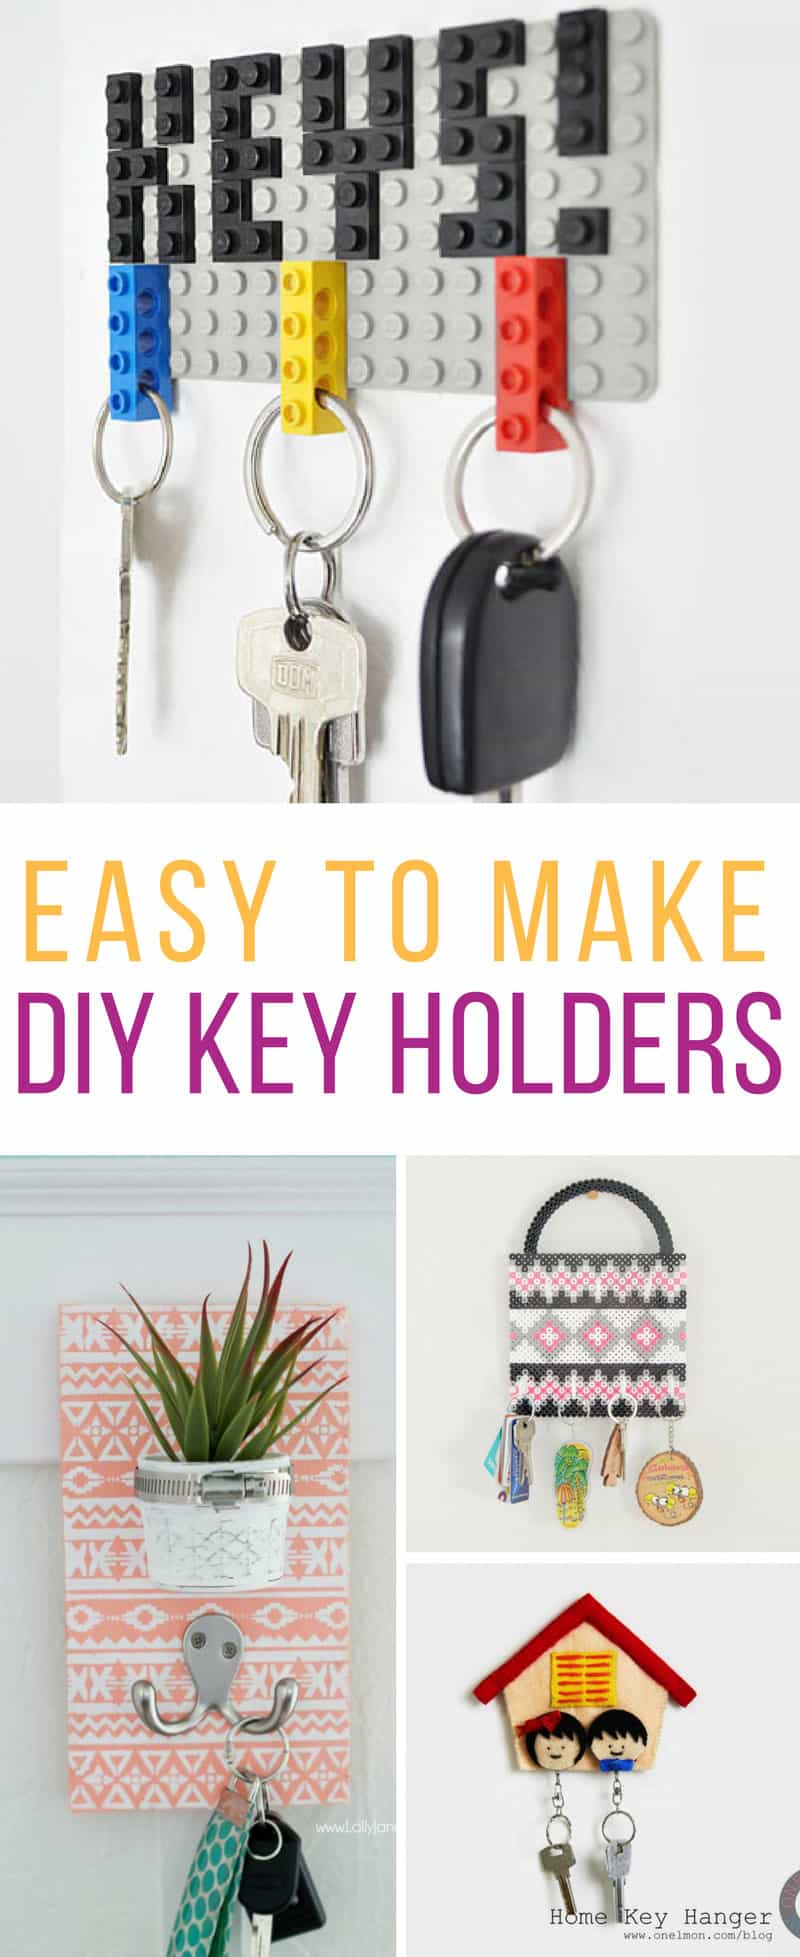 Loving these easy to make DIY key holders! Thanks for sharing!